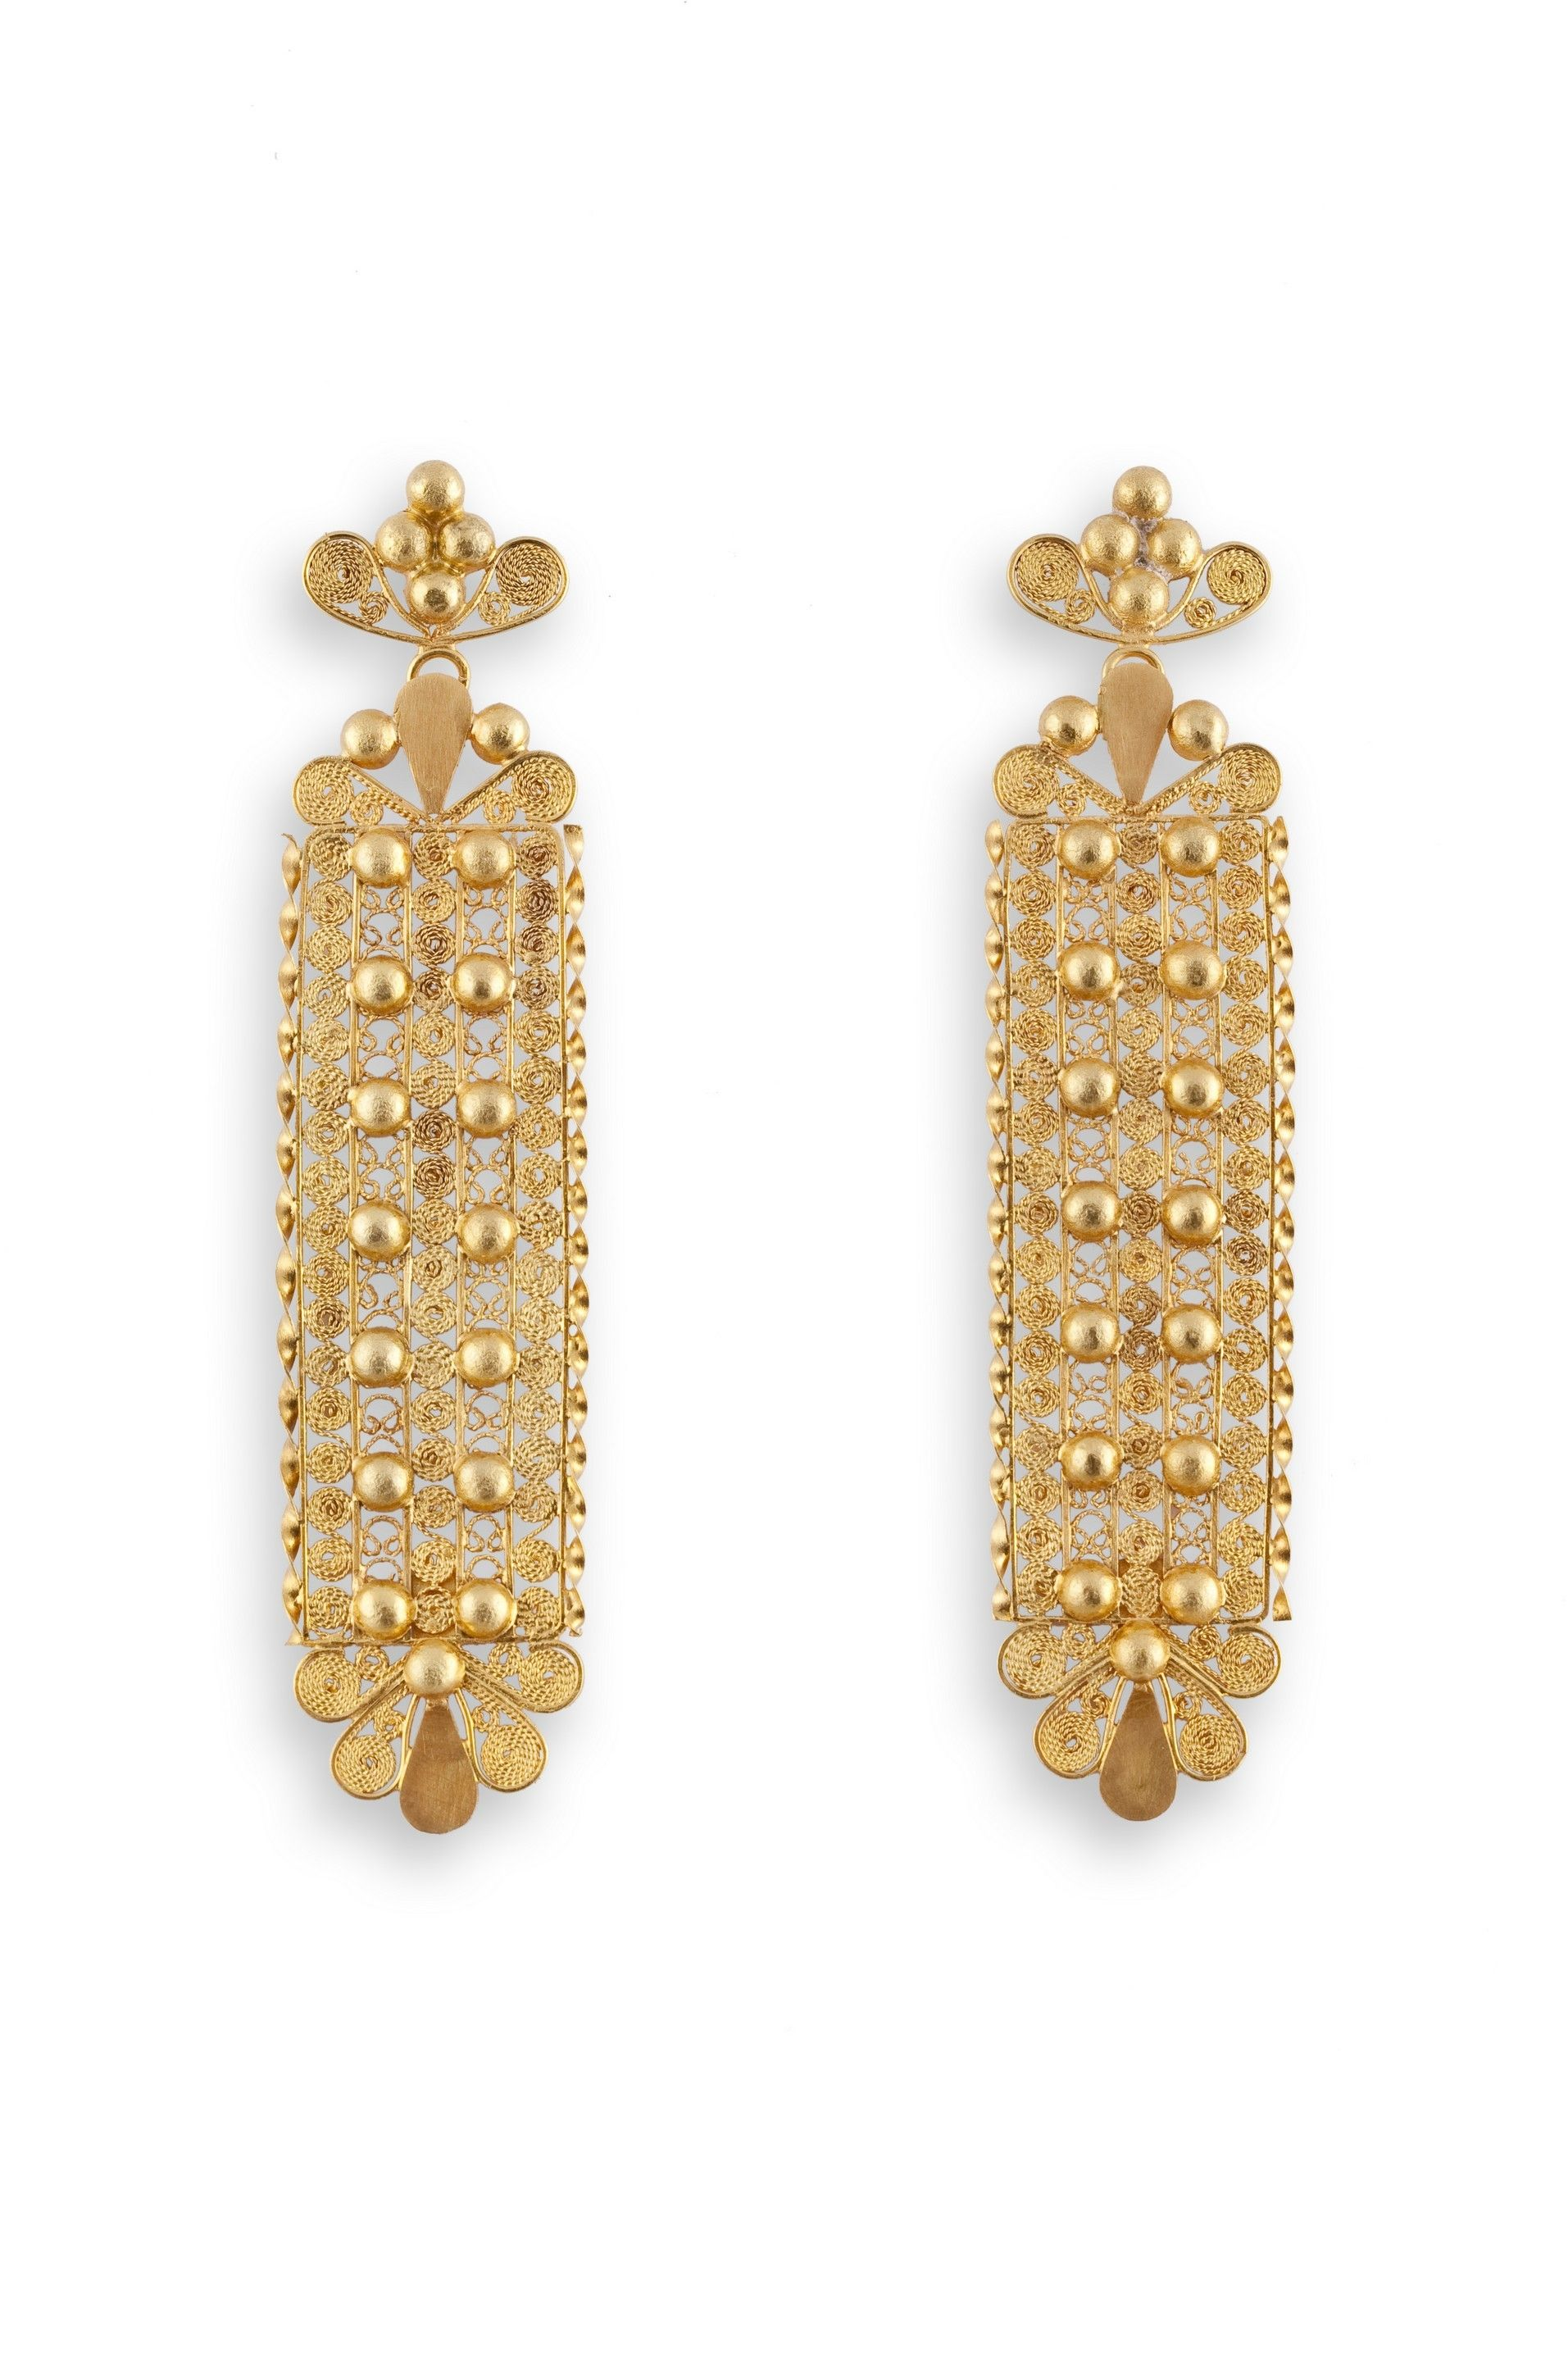 I Like These Earrings So Much Gold Filigree Handcrafted By Loredana Mandas Expert In Fine Jewelry Loredanamandas